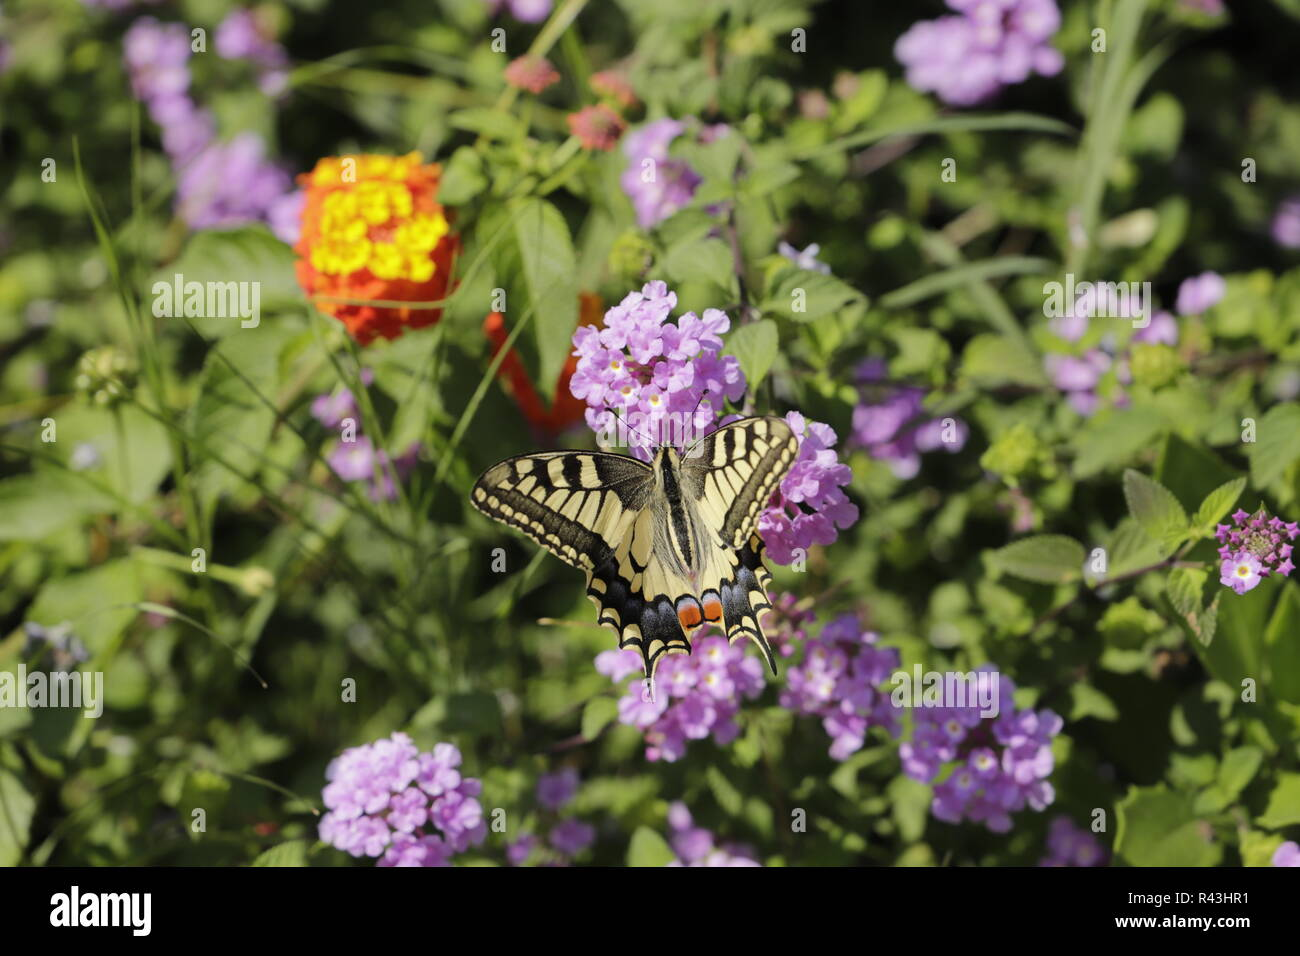 Swallowtail butterfly zipping nectar - Stock Image